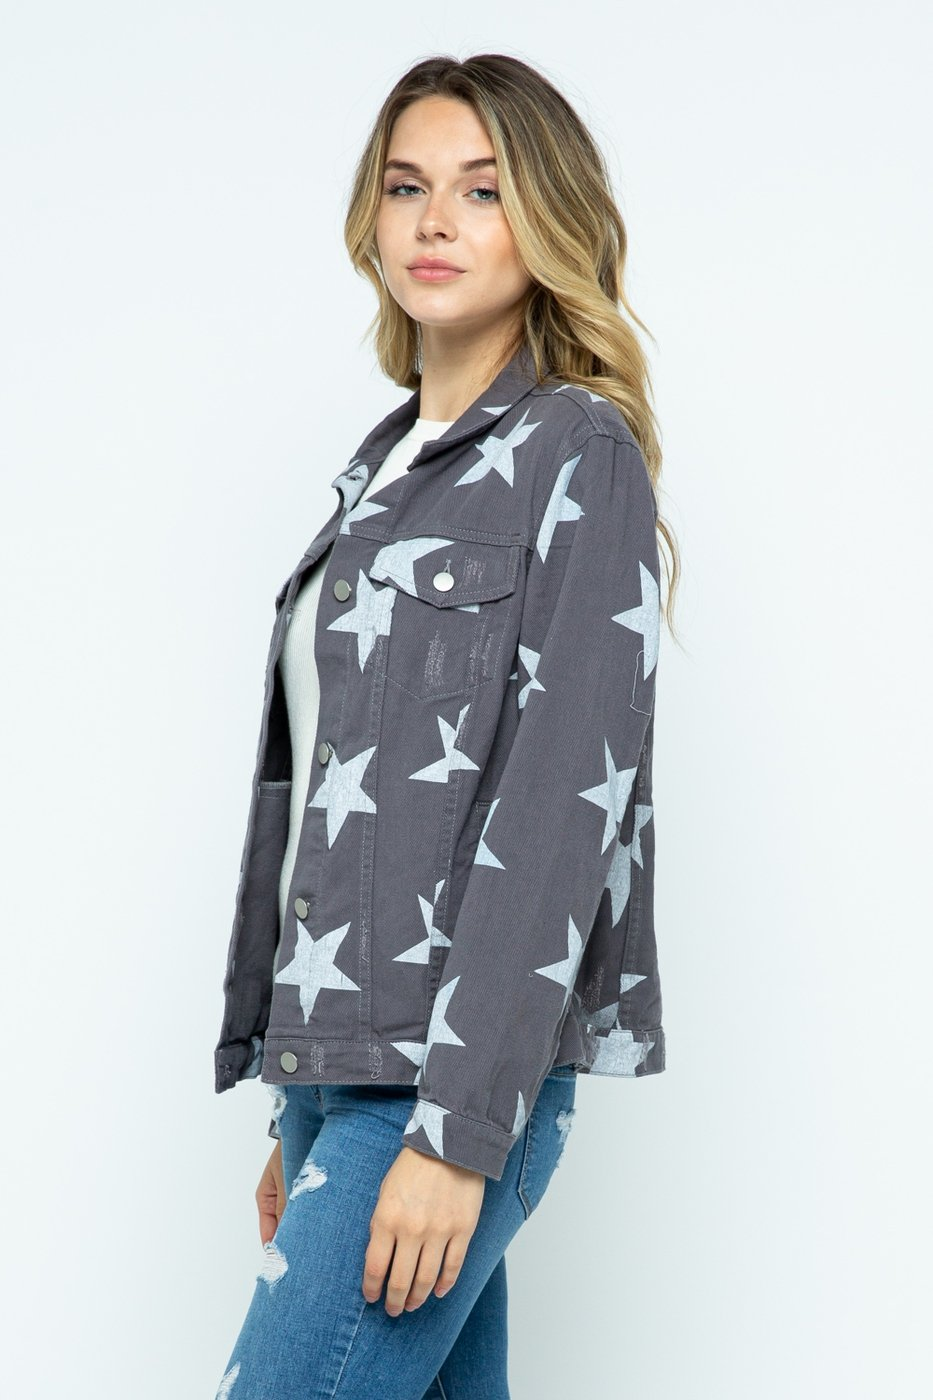 POLAGRAM Women Jackets Star Distressed Jacket || David's Clothing